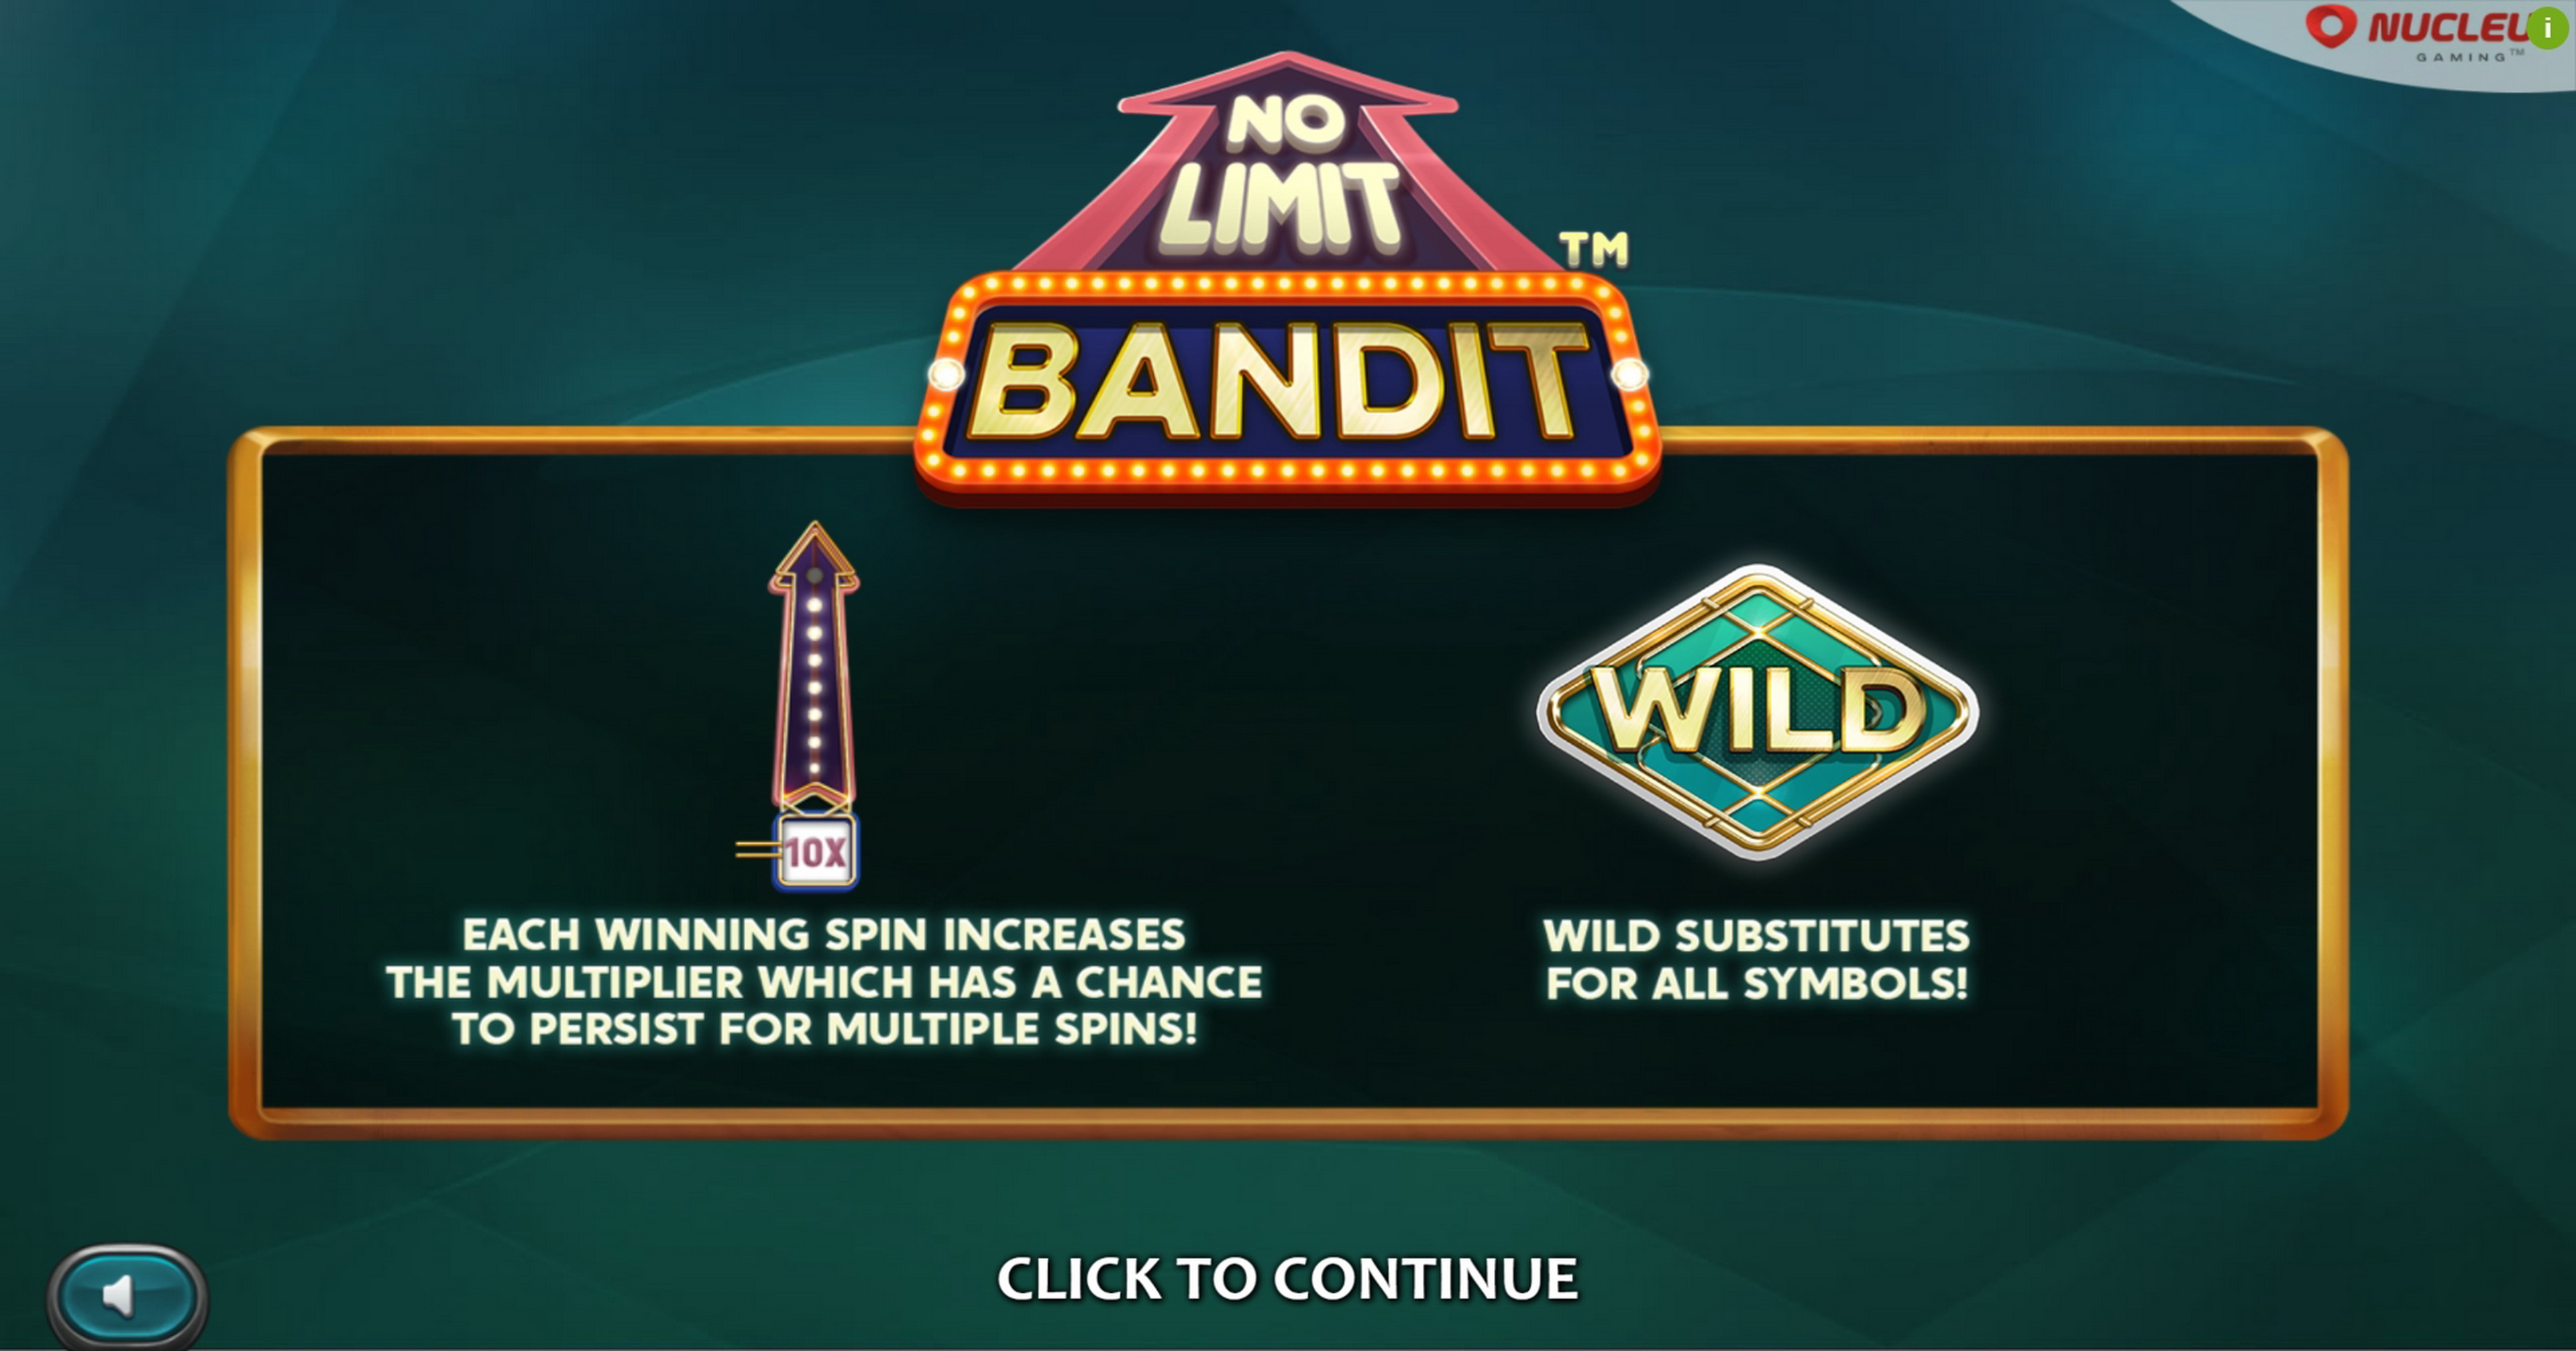 Play No Limit Bandit Free Casino Slot Game by Nucleus Gaming